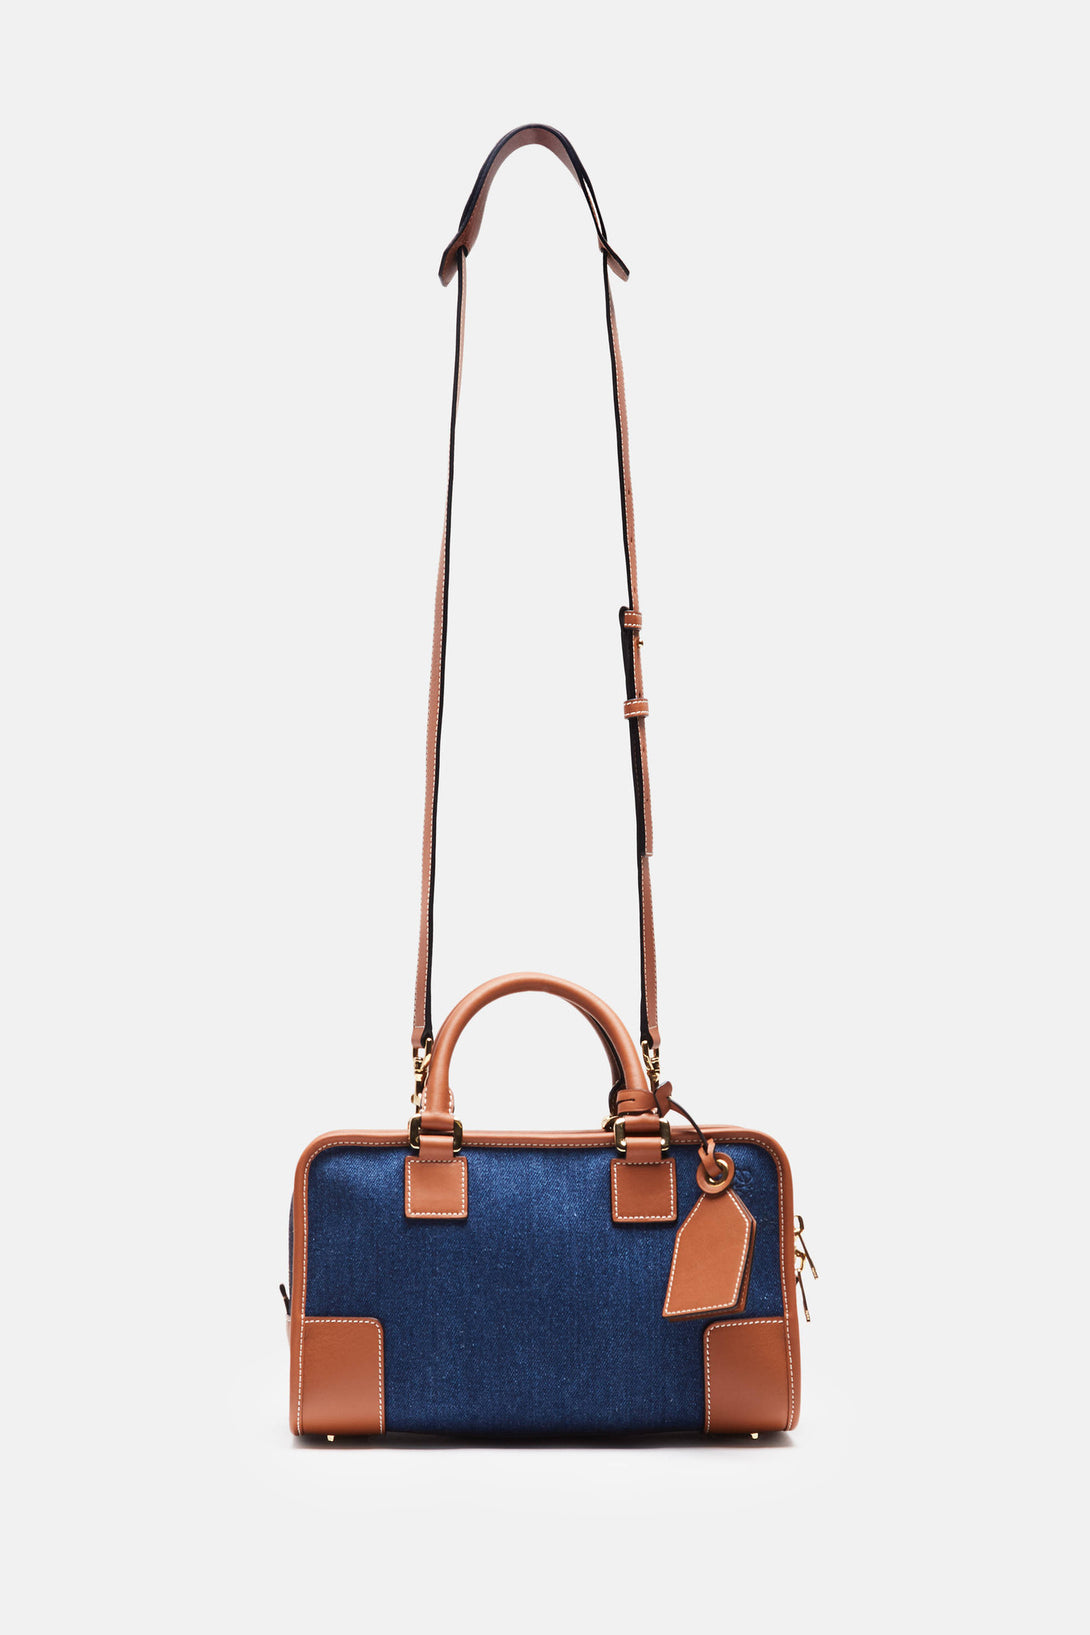 Amazona 28 Bag - Mulitone Denim